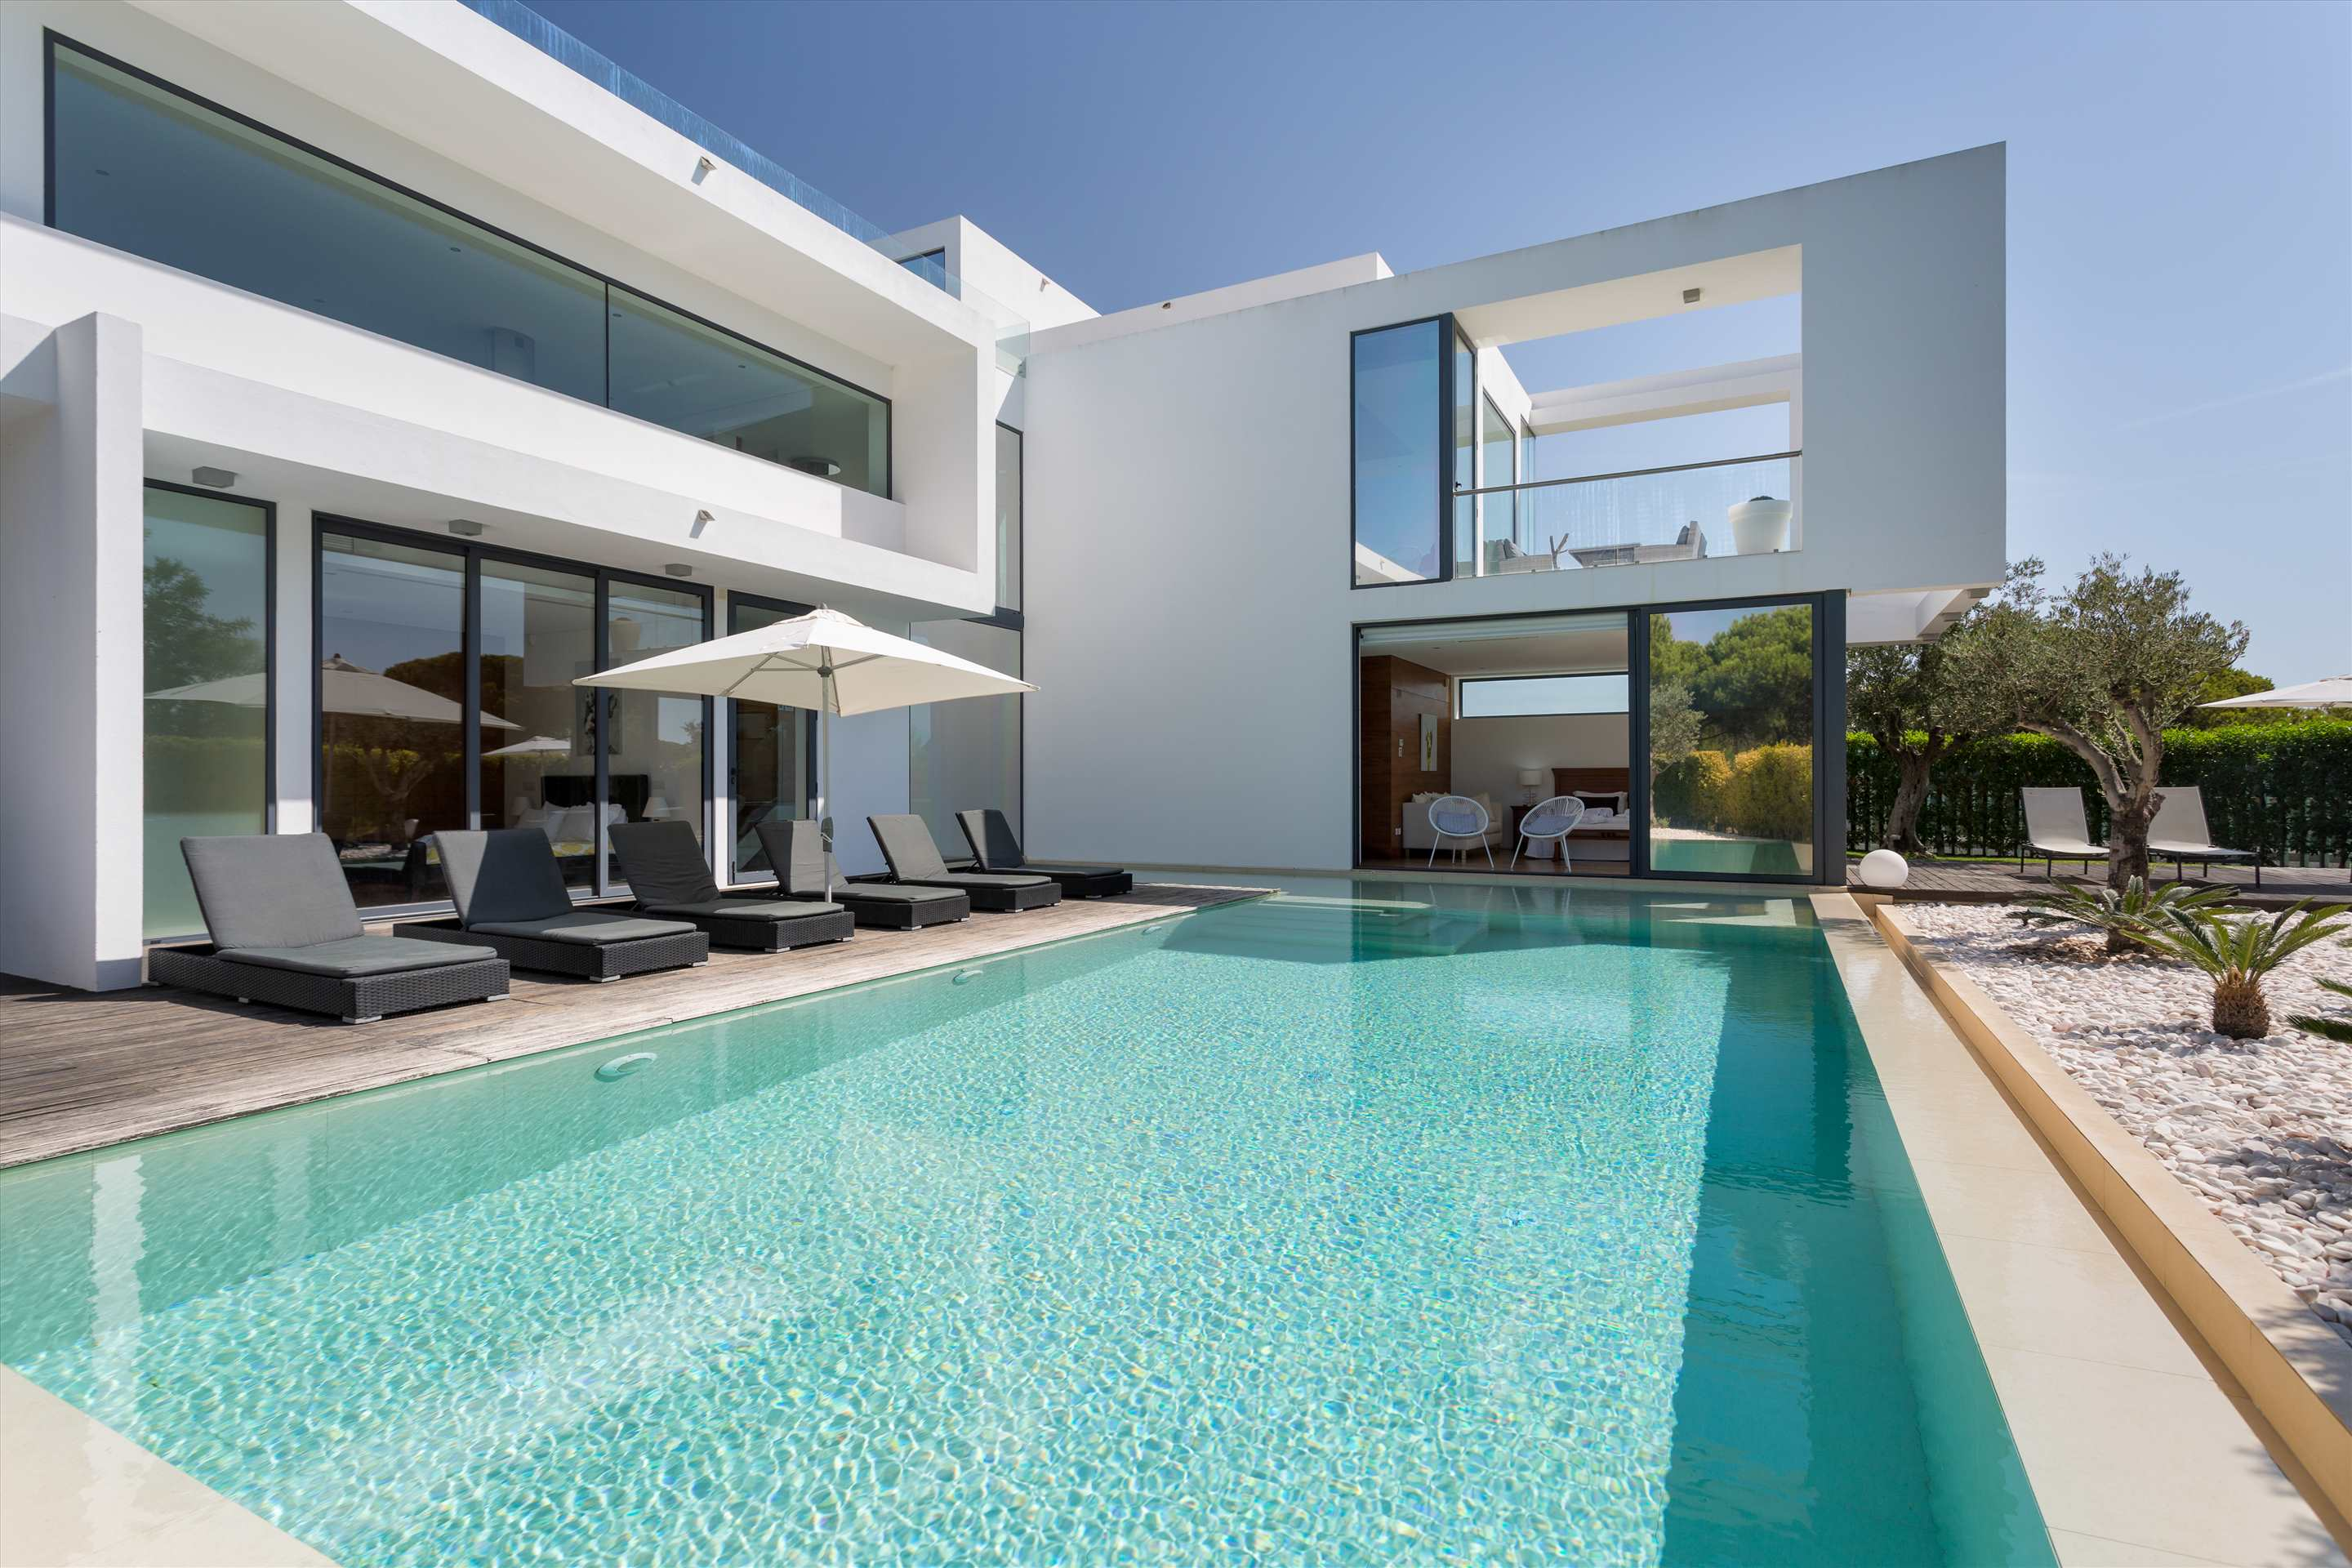 Villa Gemini, 4 bedroom villa in Vale do Lobo, Algarve